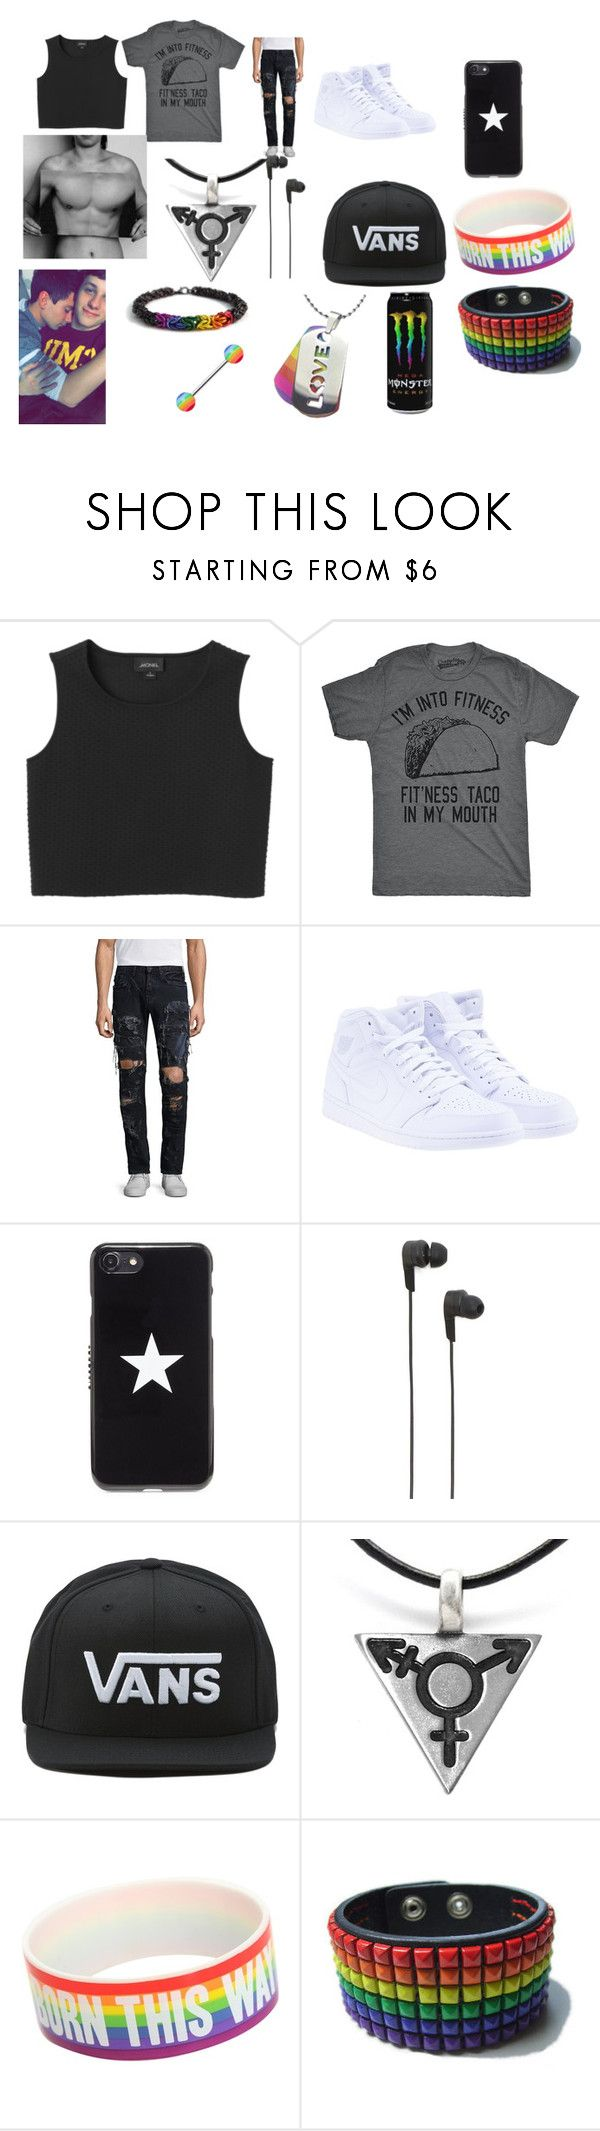 """transgender"" by hansen-justin ❤ liked on Polyvore featuring Monki, PRPS, NIKE, Givenchy, B&O Play, Vans, Hot Topic, men's fashion, menswear and lbgt"